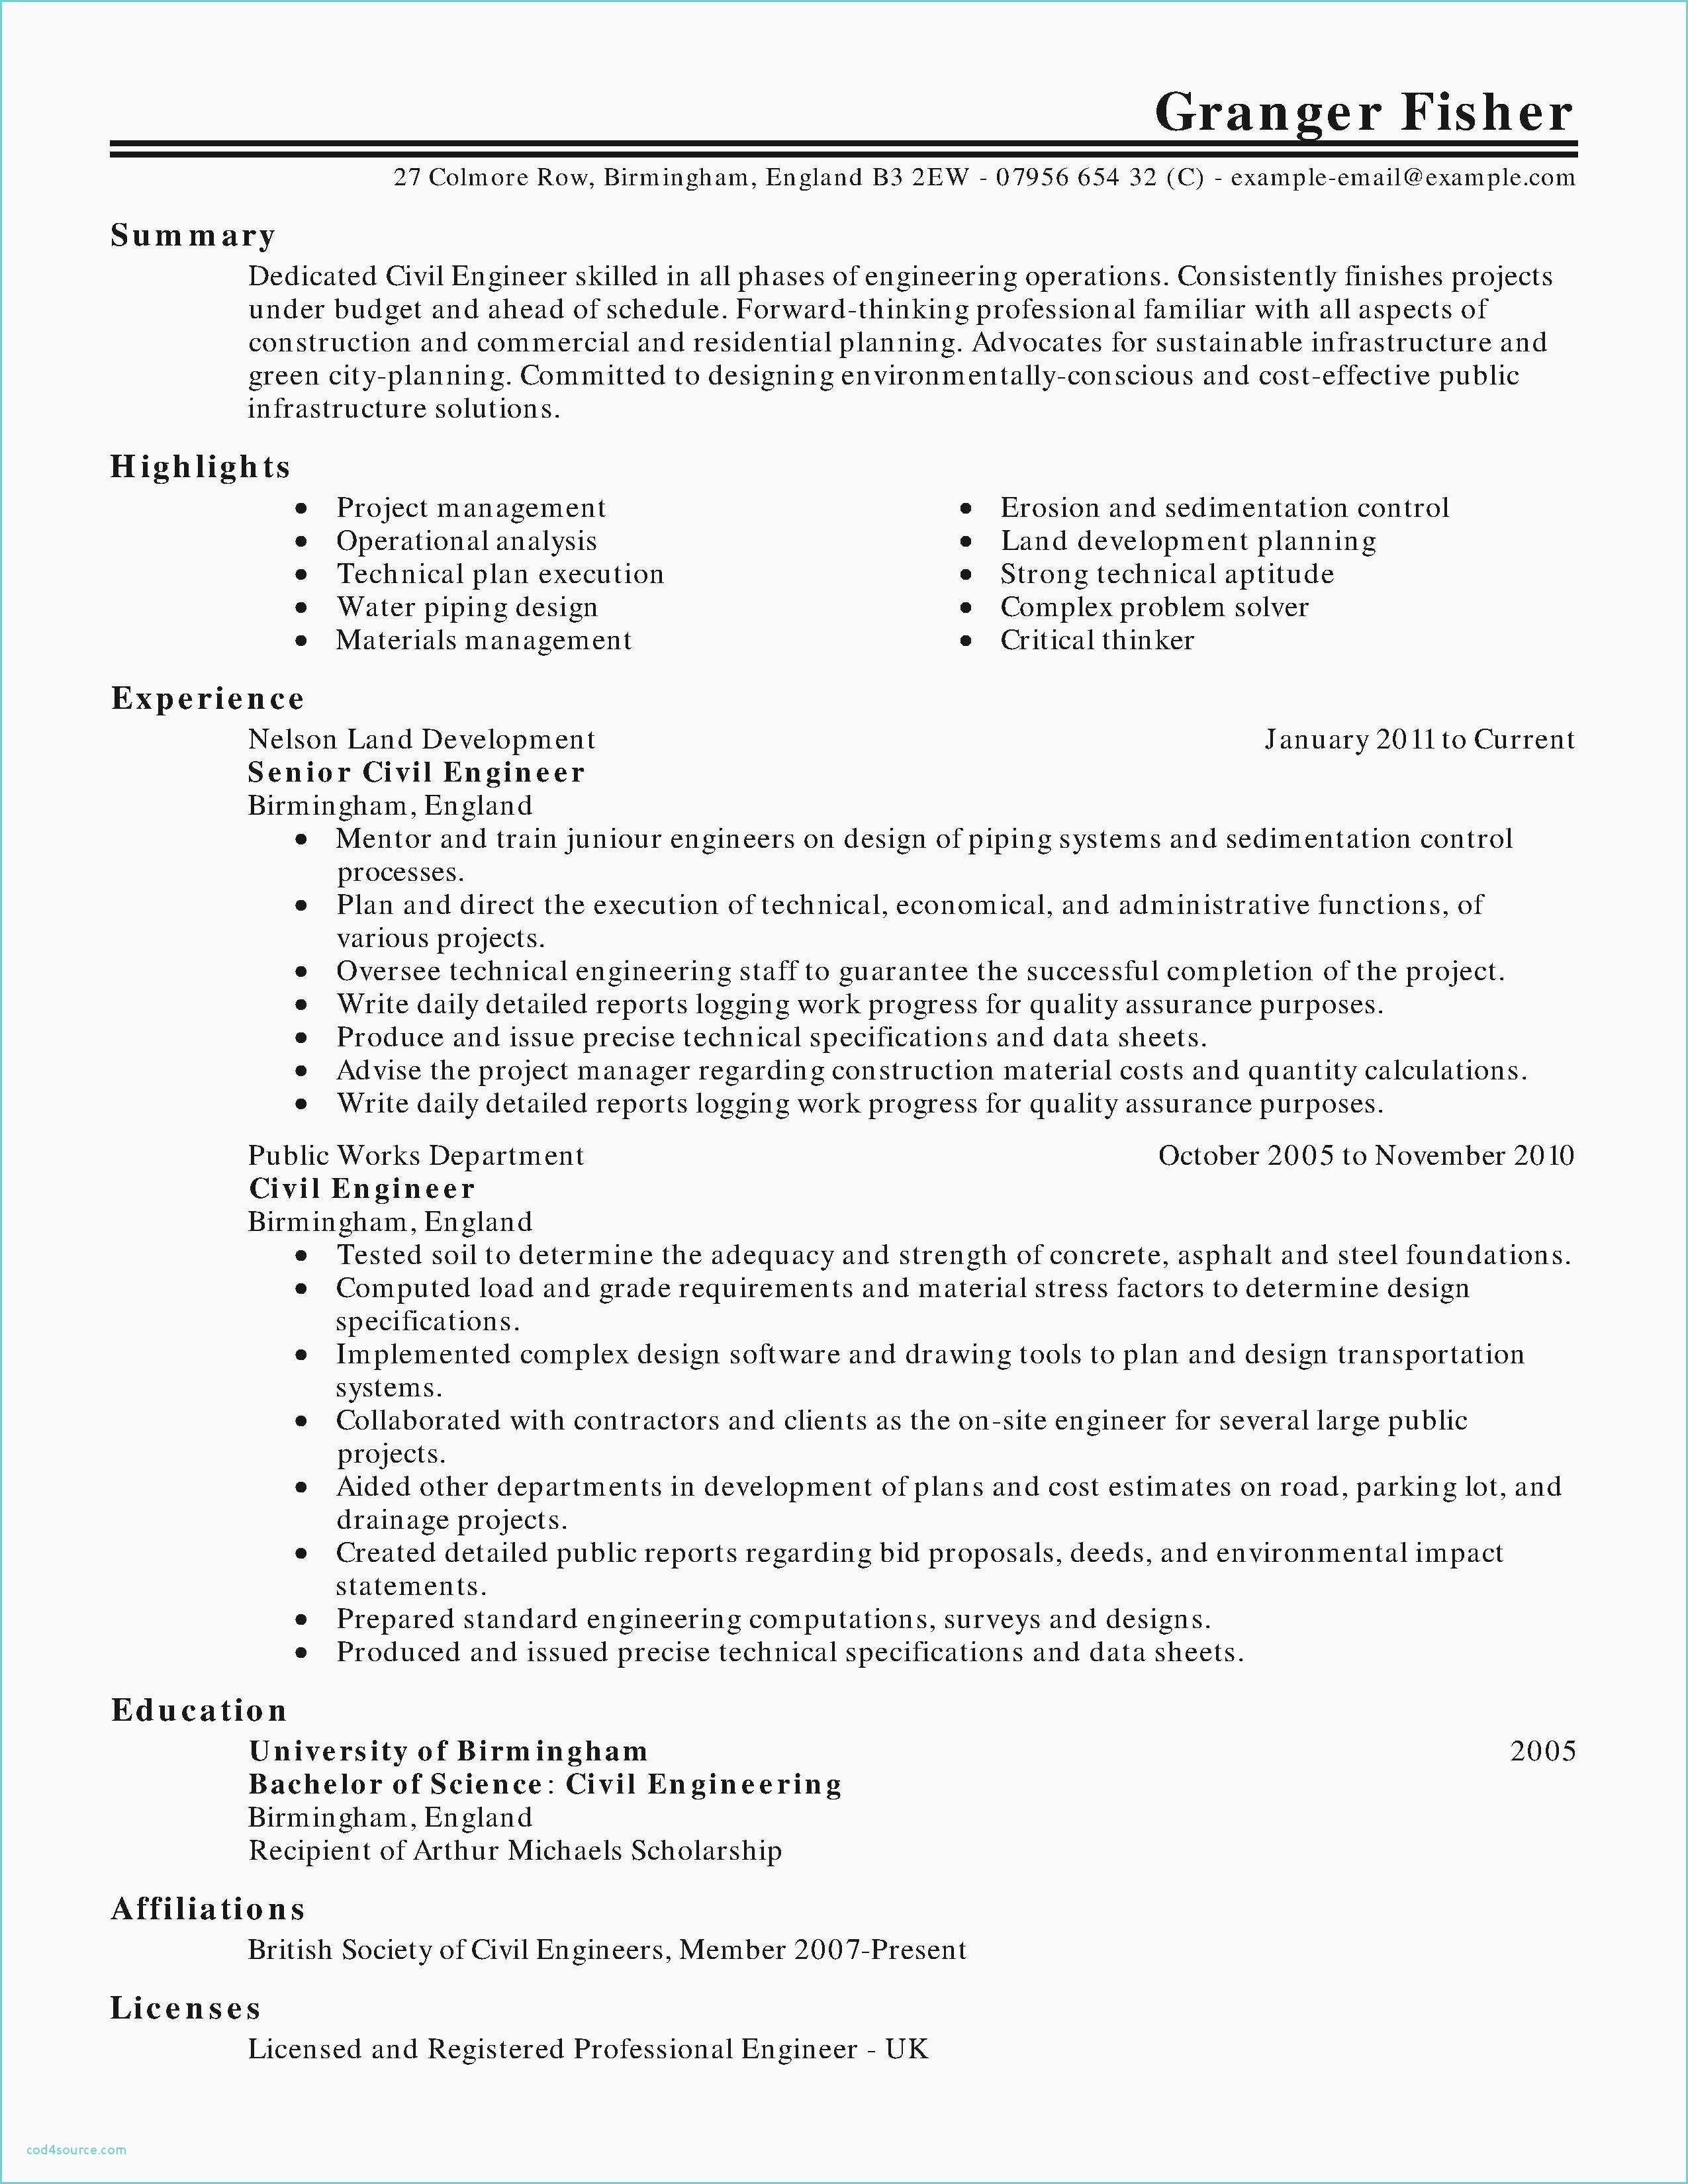 71 Cool Photographer Resume Pdf with Design